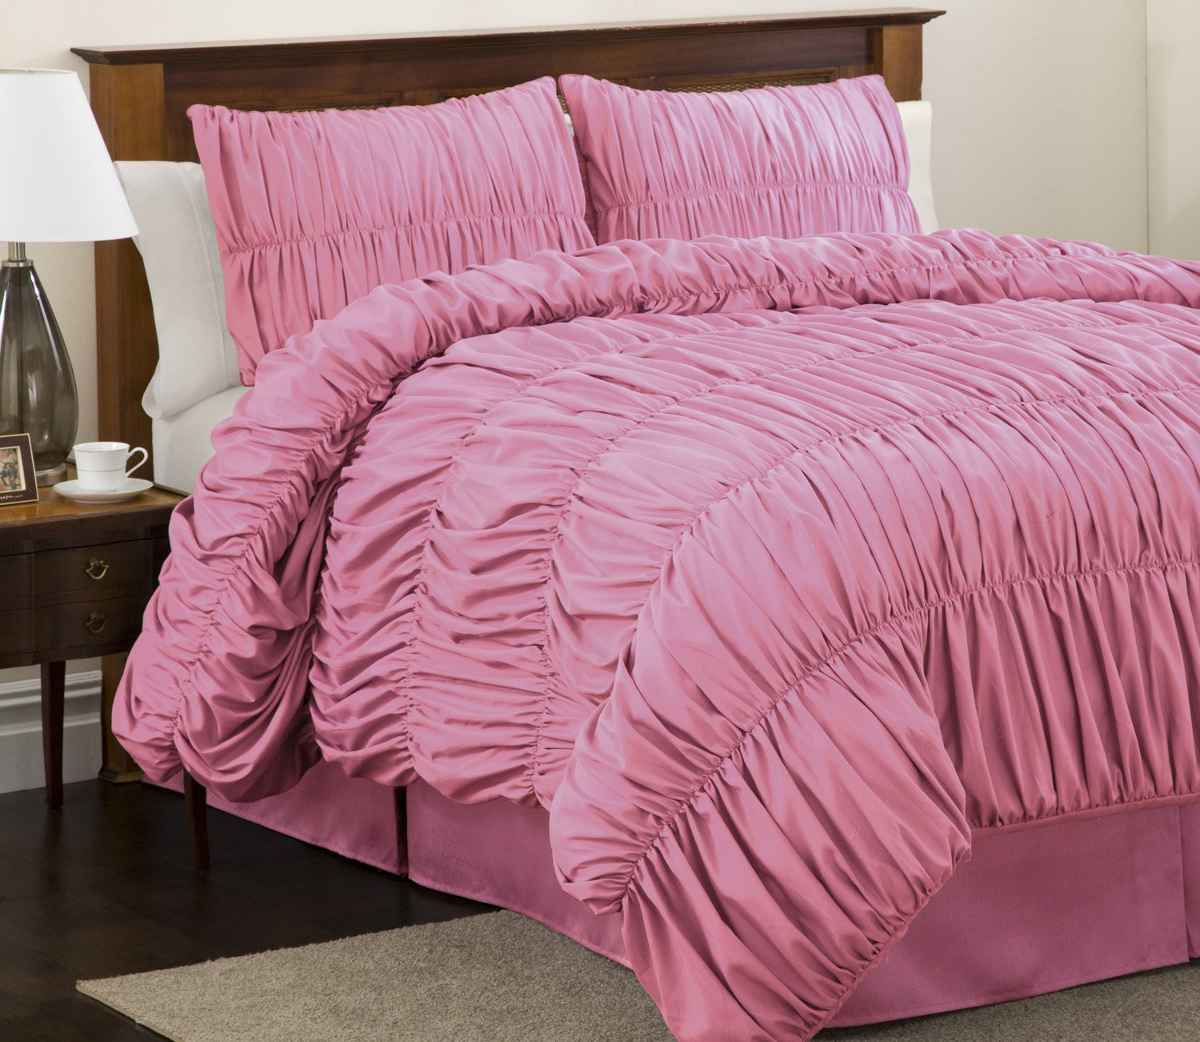 pink ruffle bedspreads ideas for bedroom